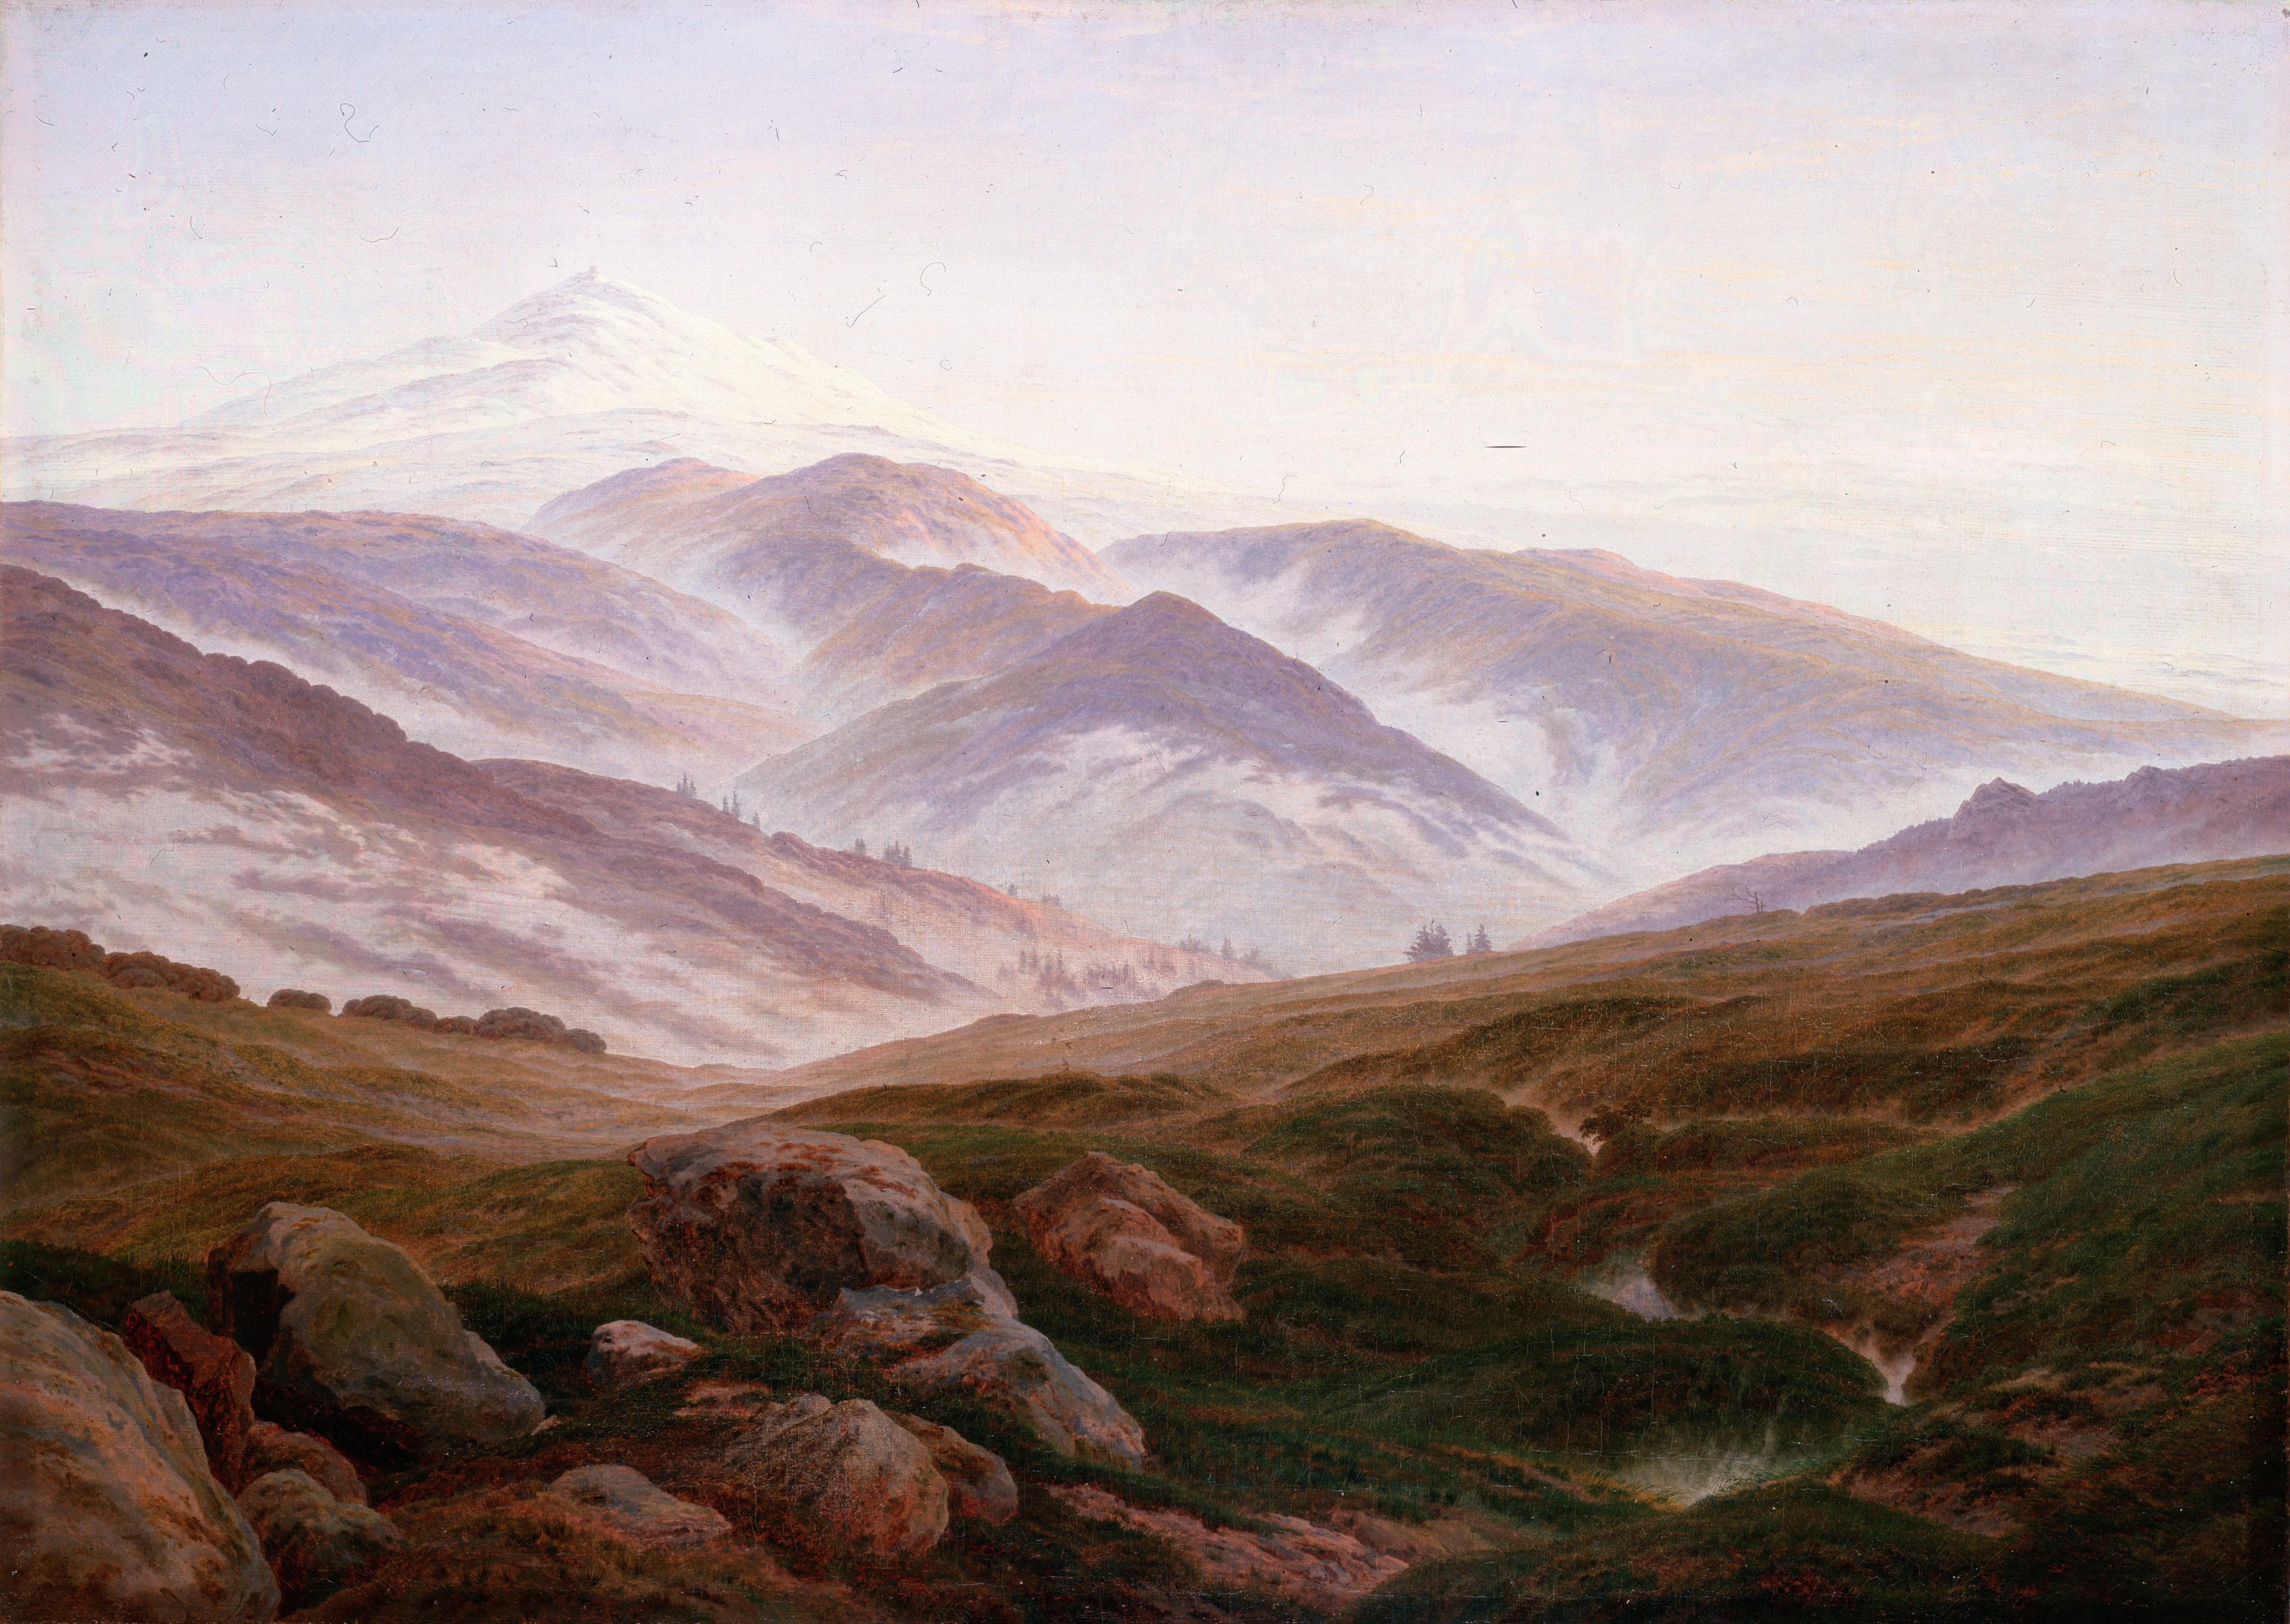 An image of 'Memories of the Giant Mountains' by Caspar David Friedrich